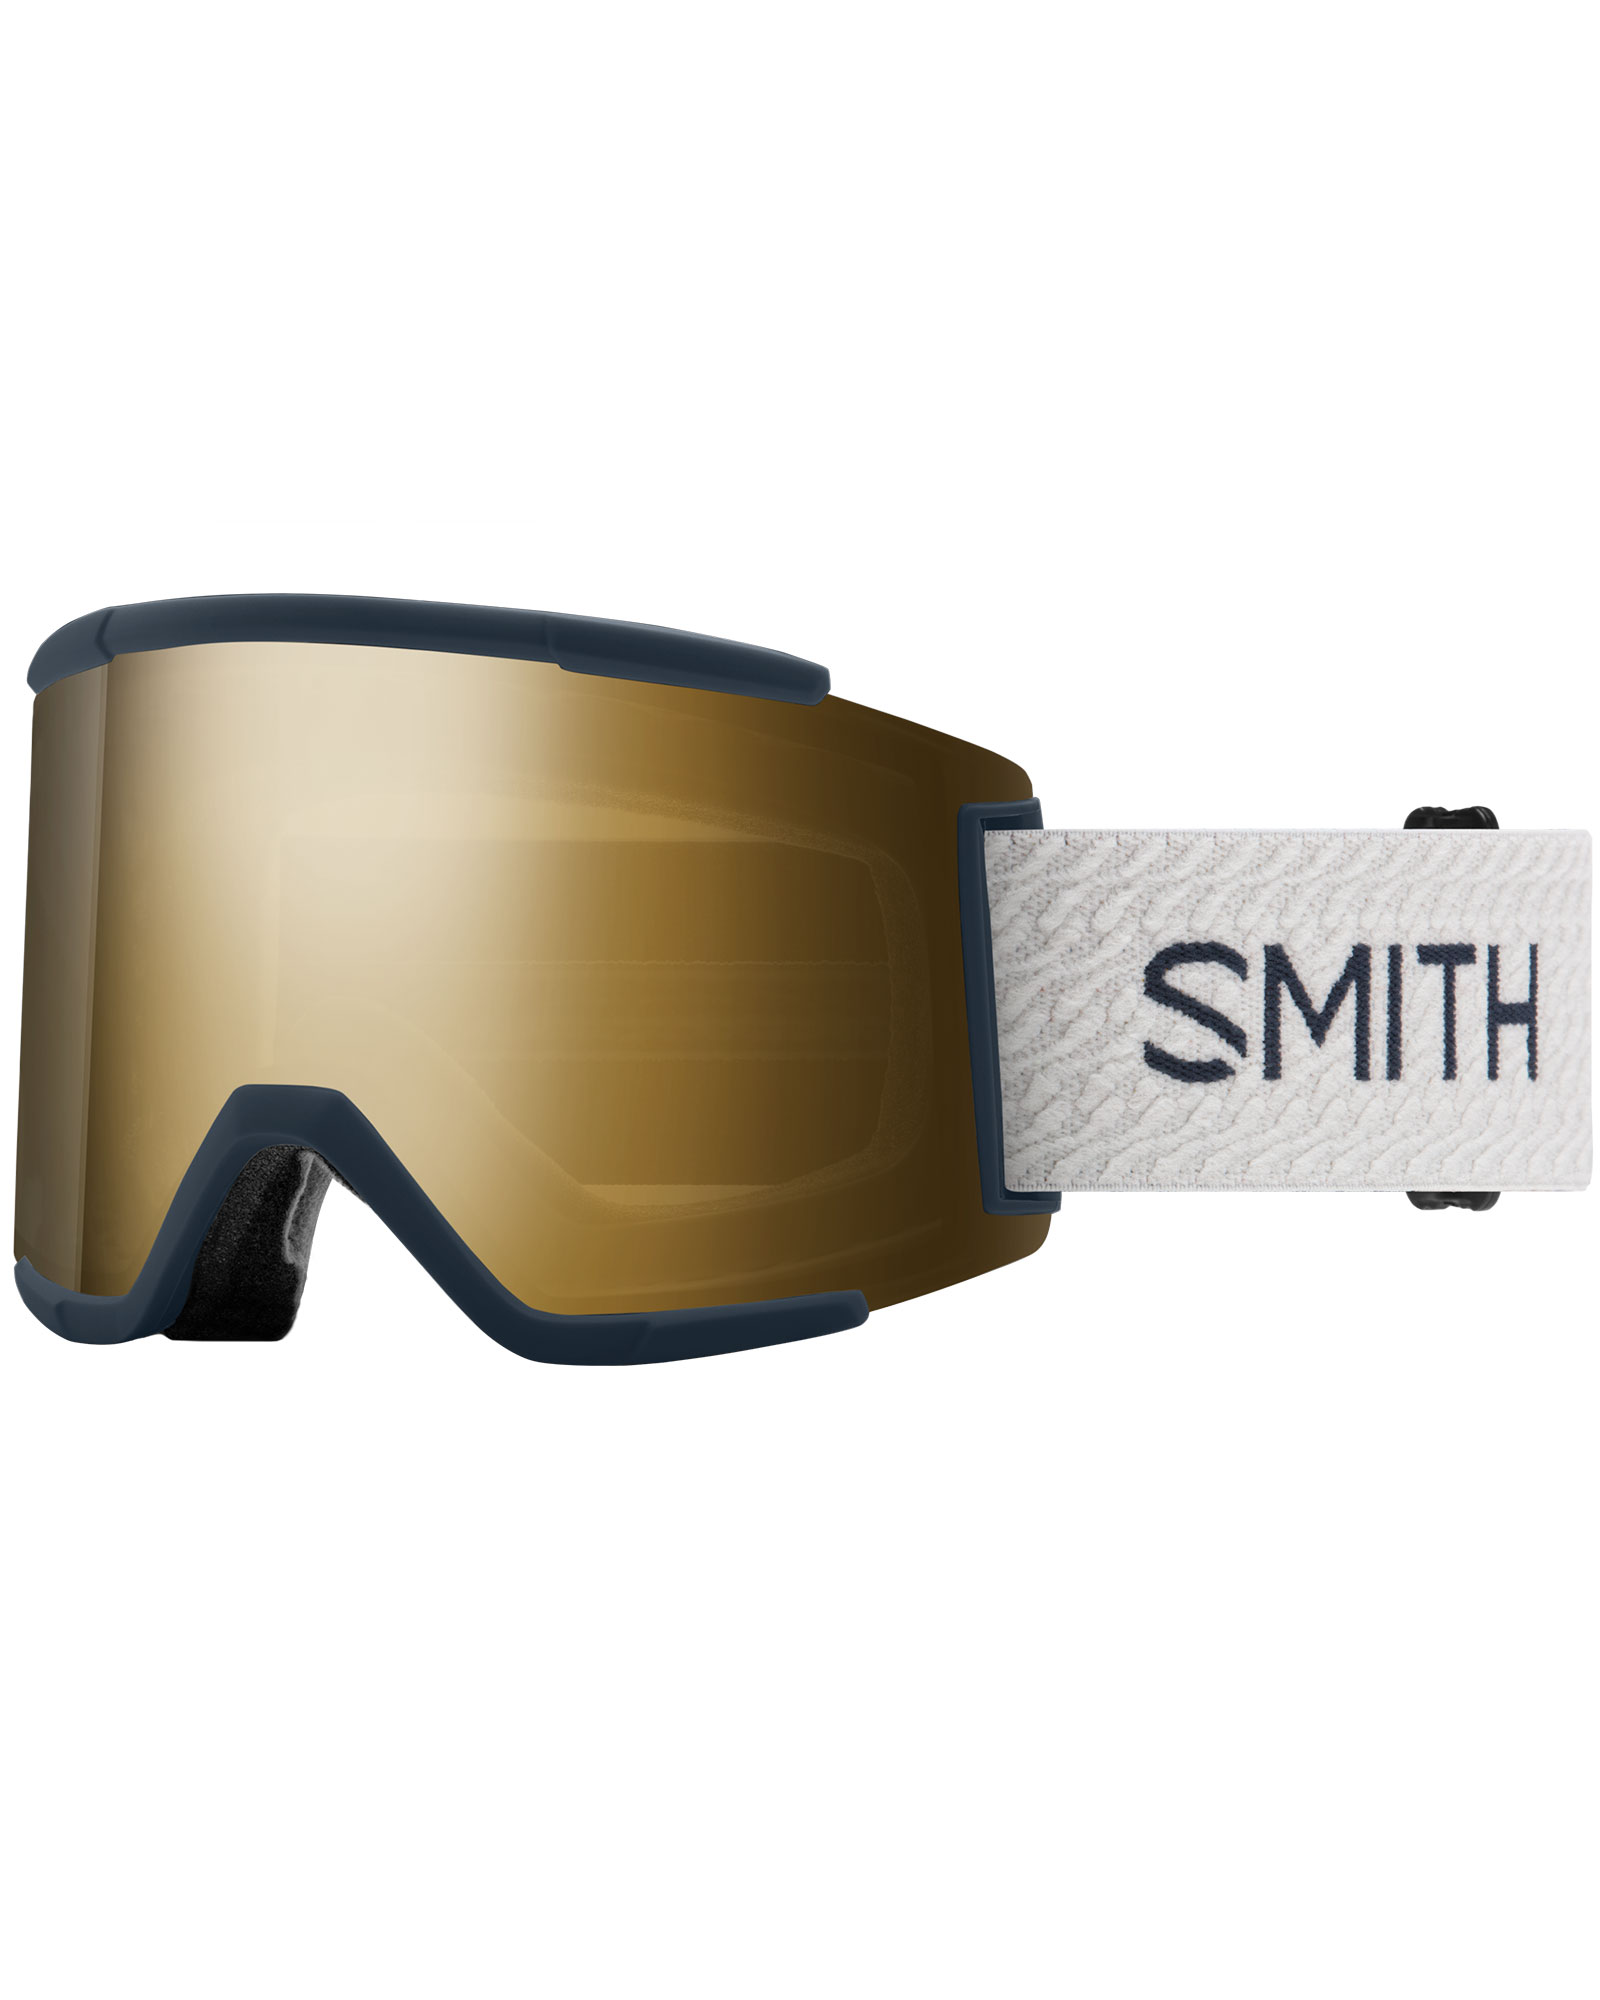 Smith Squad XL French Navy Mod / ChromaPop Sun Black Gold Mirror + ChromaPop Storm Rose Flash Goggles 2020 / 2021 0